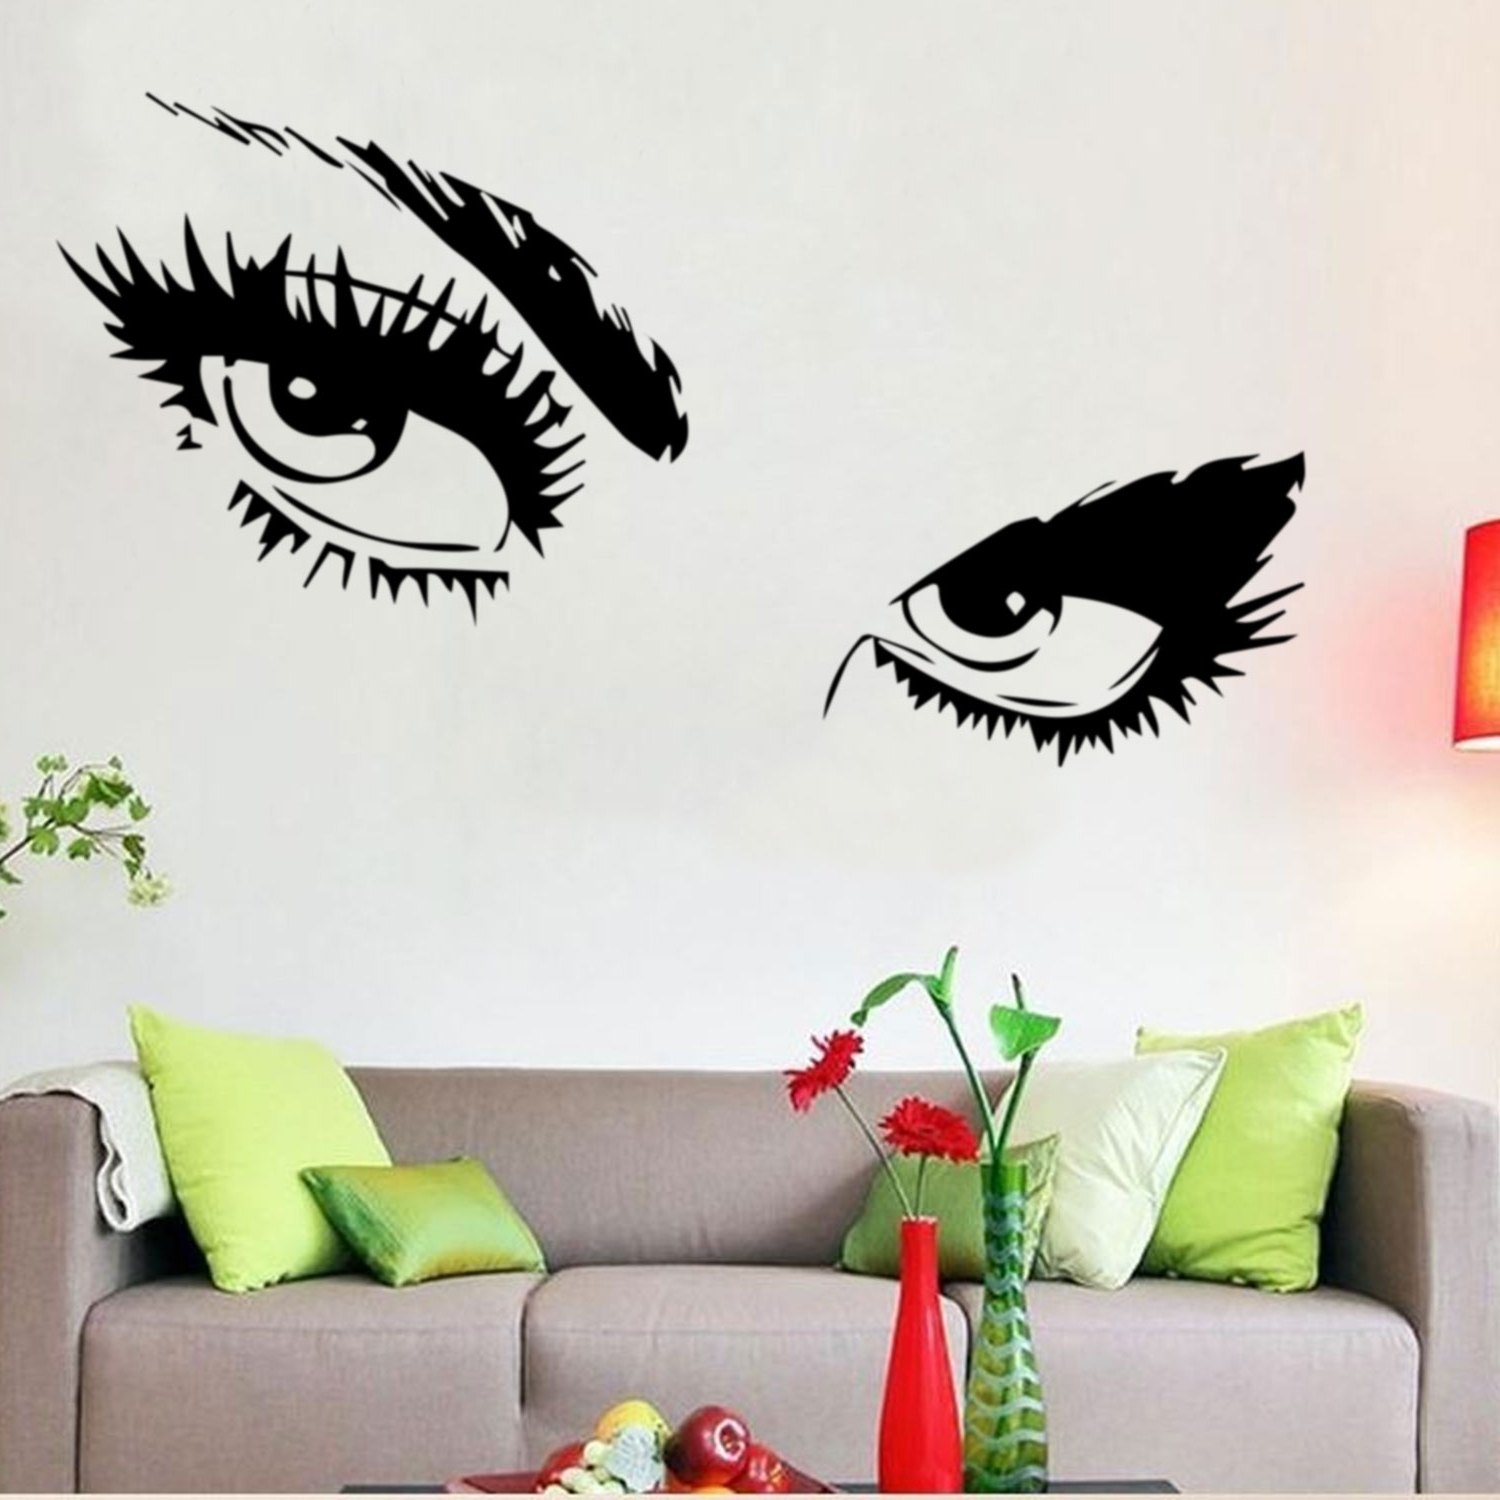 Wall Sticker Art Intended For 2017 Audrey Hepburn Sexy Eyes / Attractive Eye Wall Decal Art Decor (View 10 of 15)